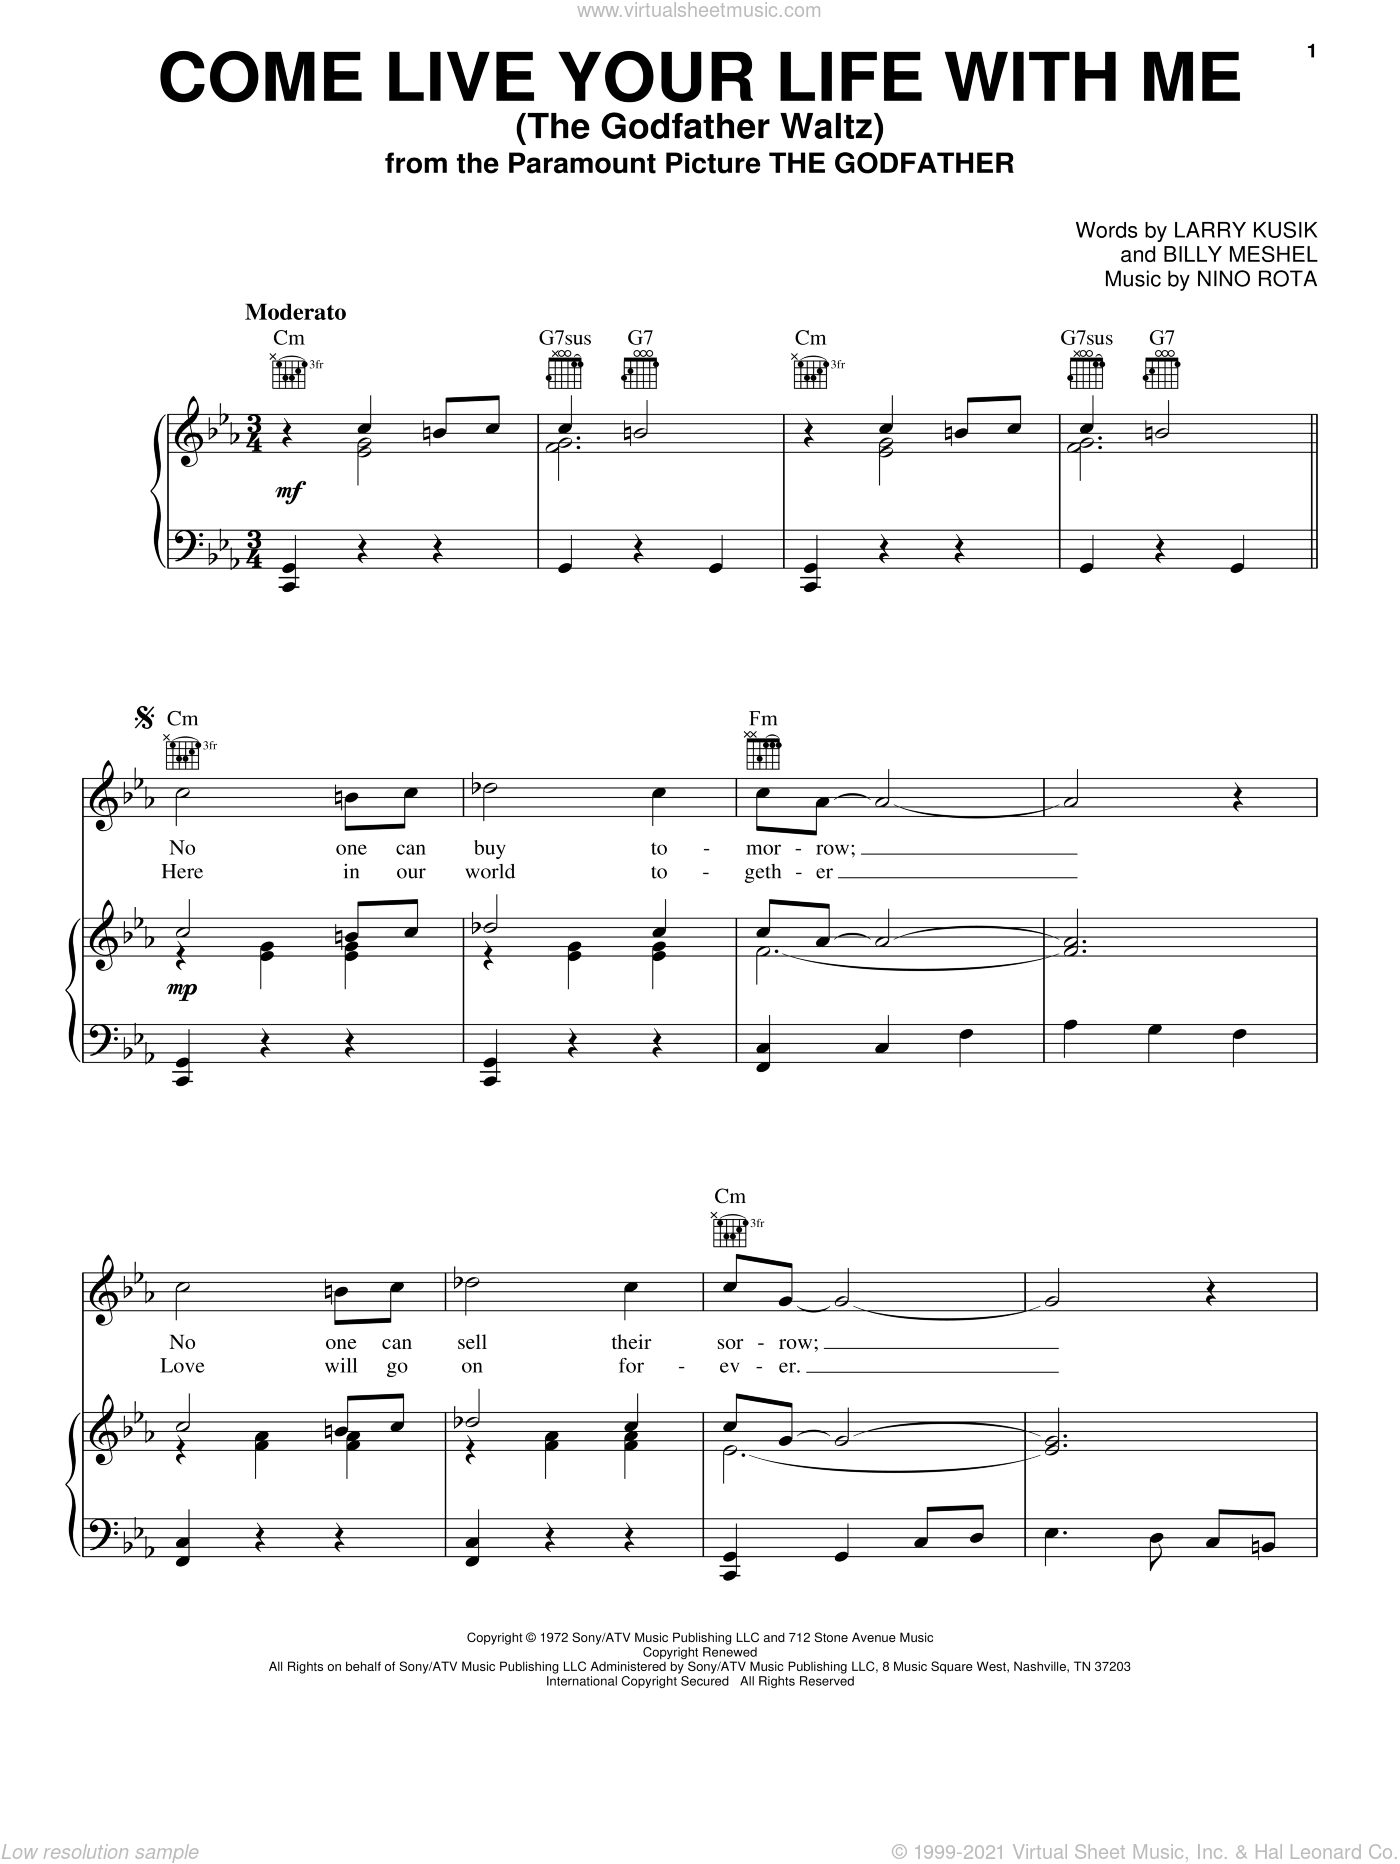 Come Live Your Life With Me (The Godfather Waltz) sheet music for voice, piano or guitar by Larry Kusik